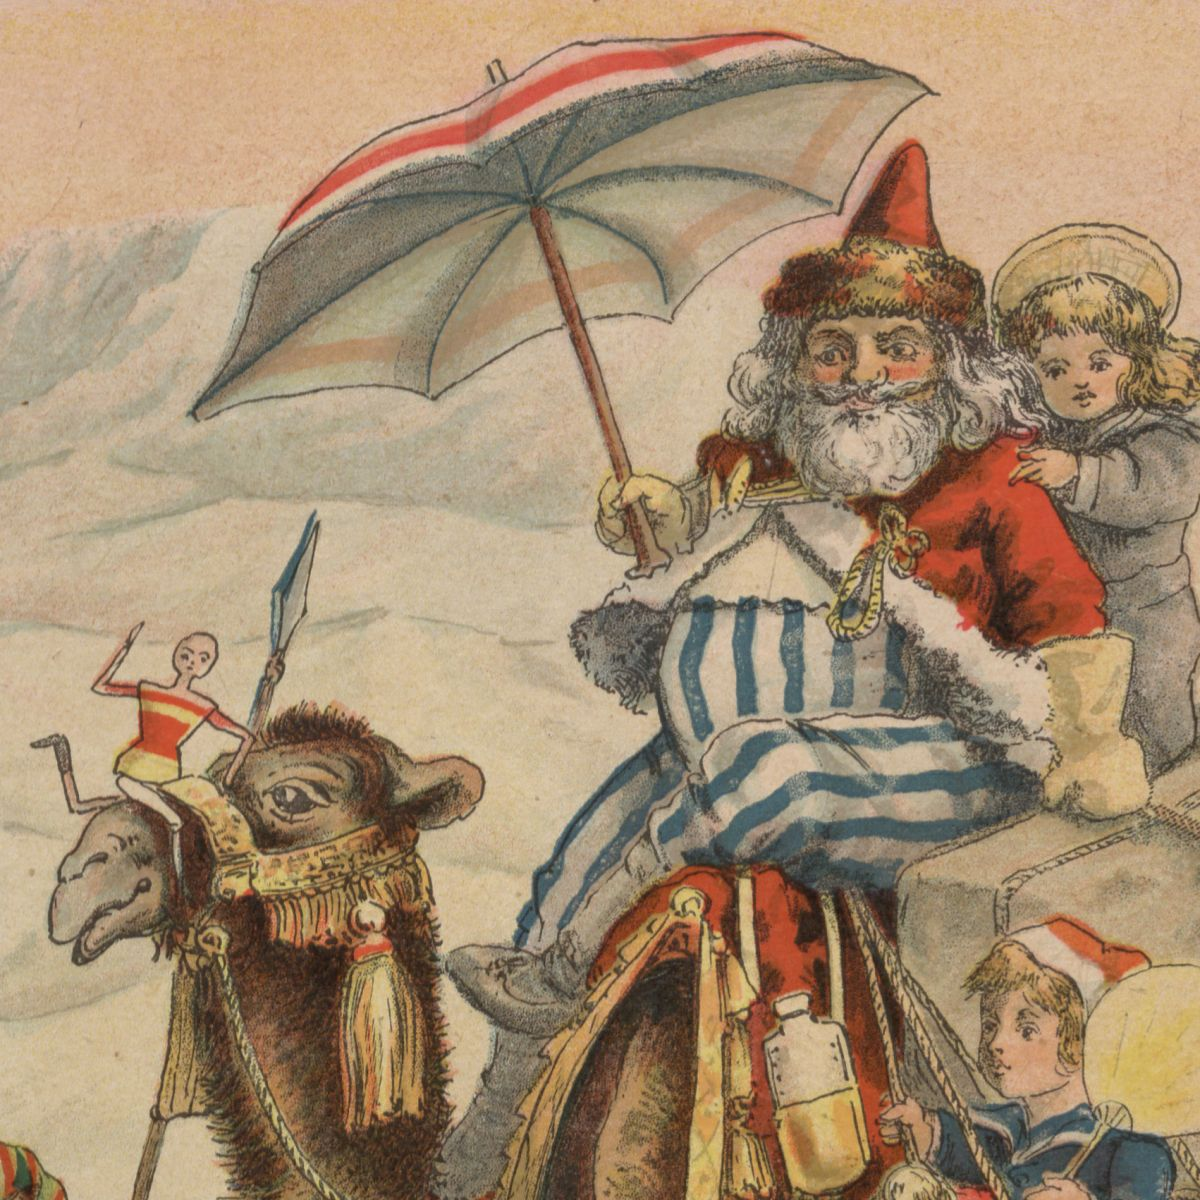 Santa traveling on a camel in the Middle East from the book Around the World with Santa Claus, 1900